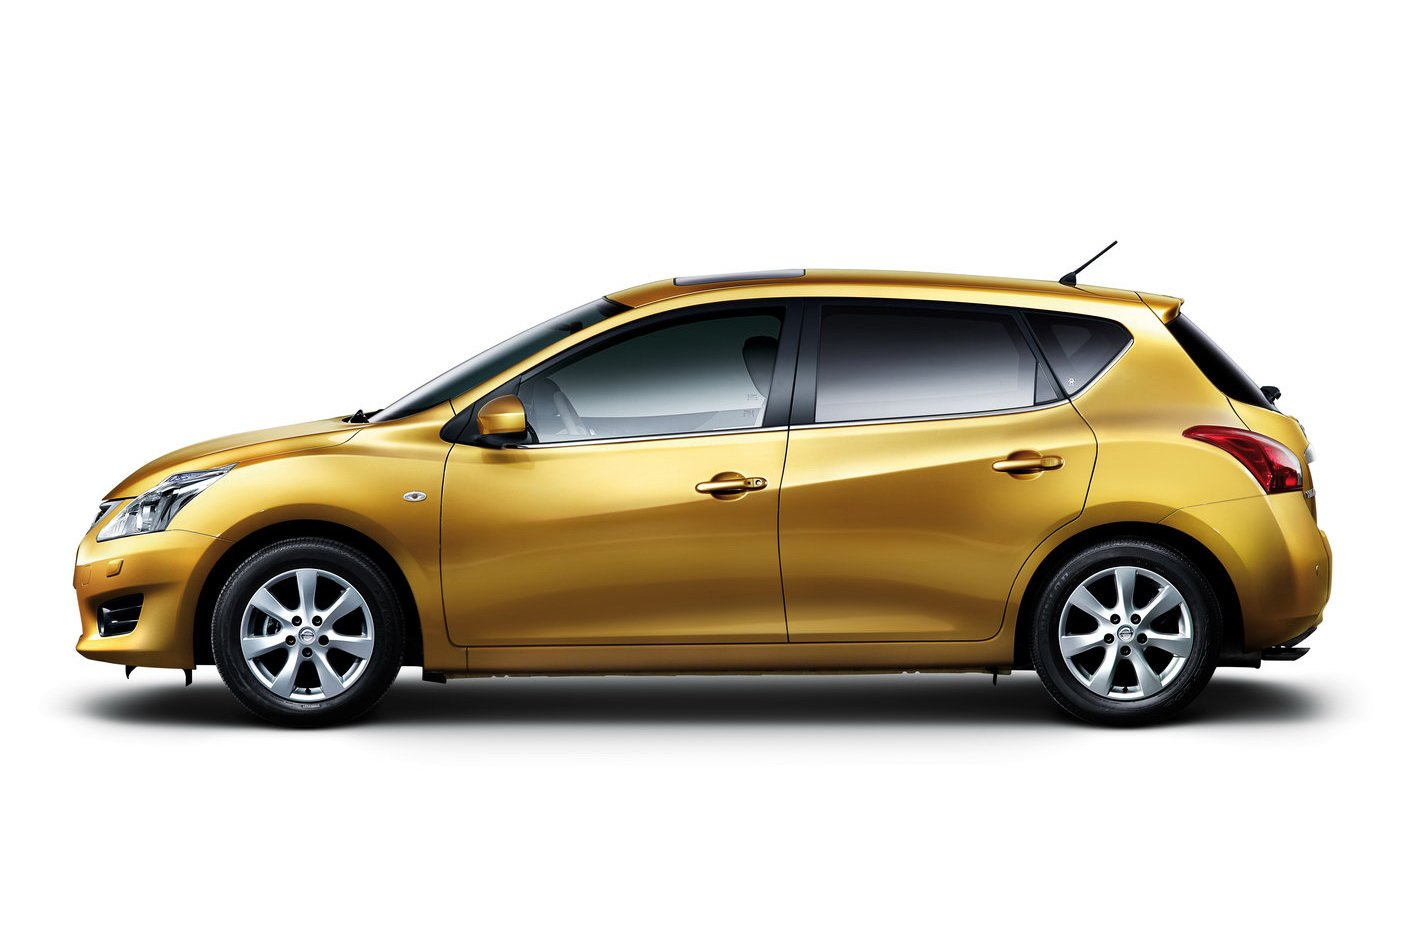 Latest All New Nissan Tiida Unveiled At Shanghai Auto Show Free Download